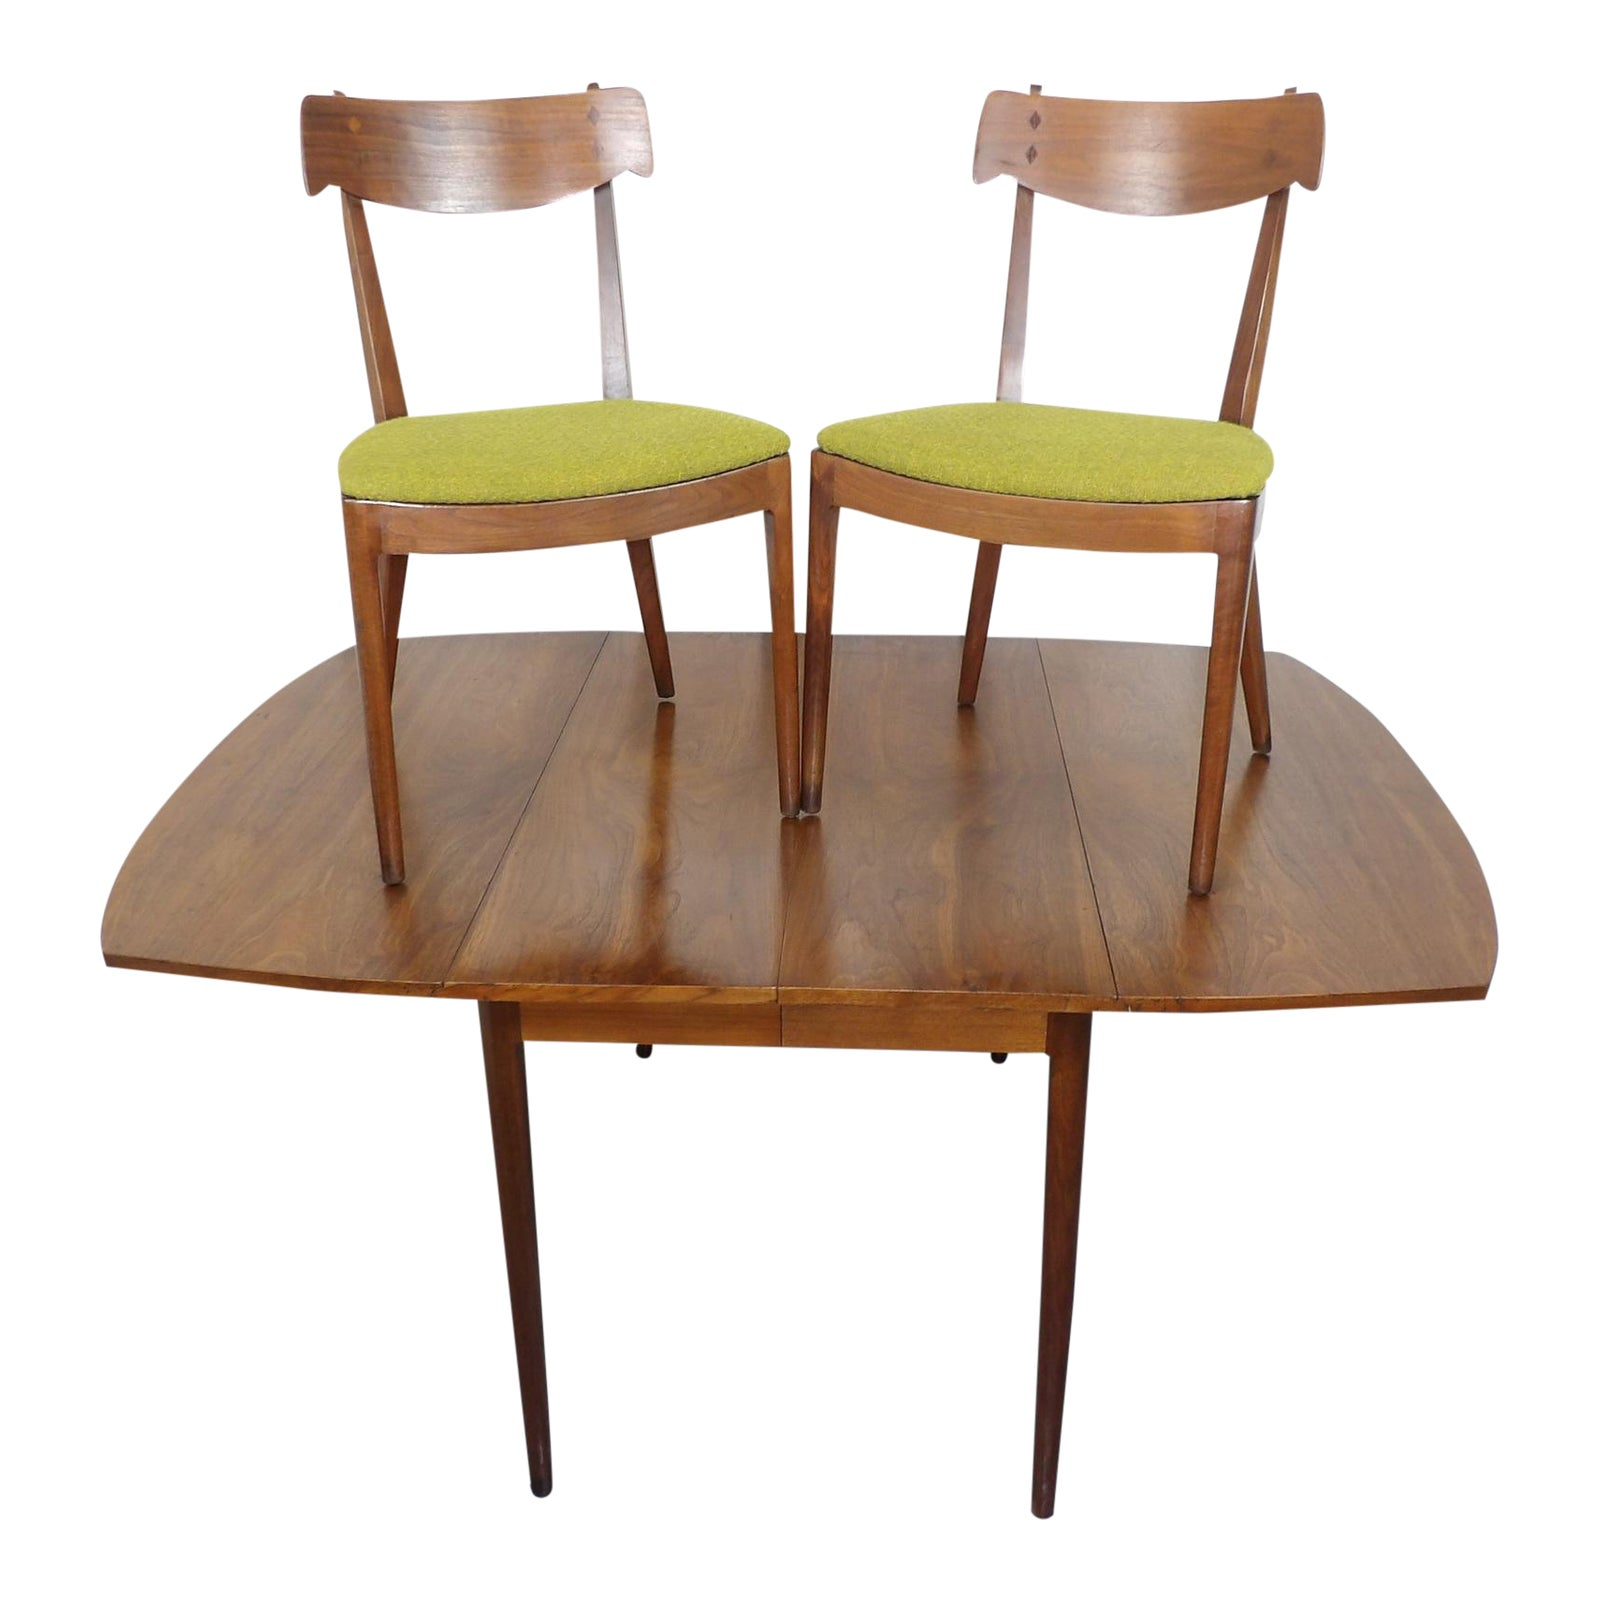 Drexel Declaration Dining Table & Chairs Kipp Stewart Mid Century